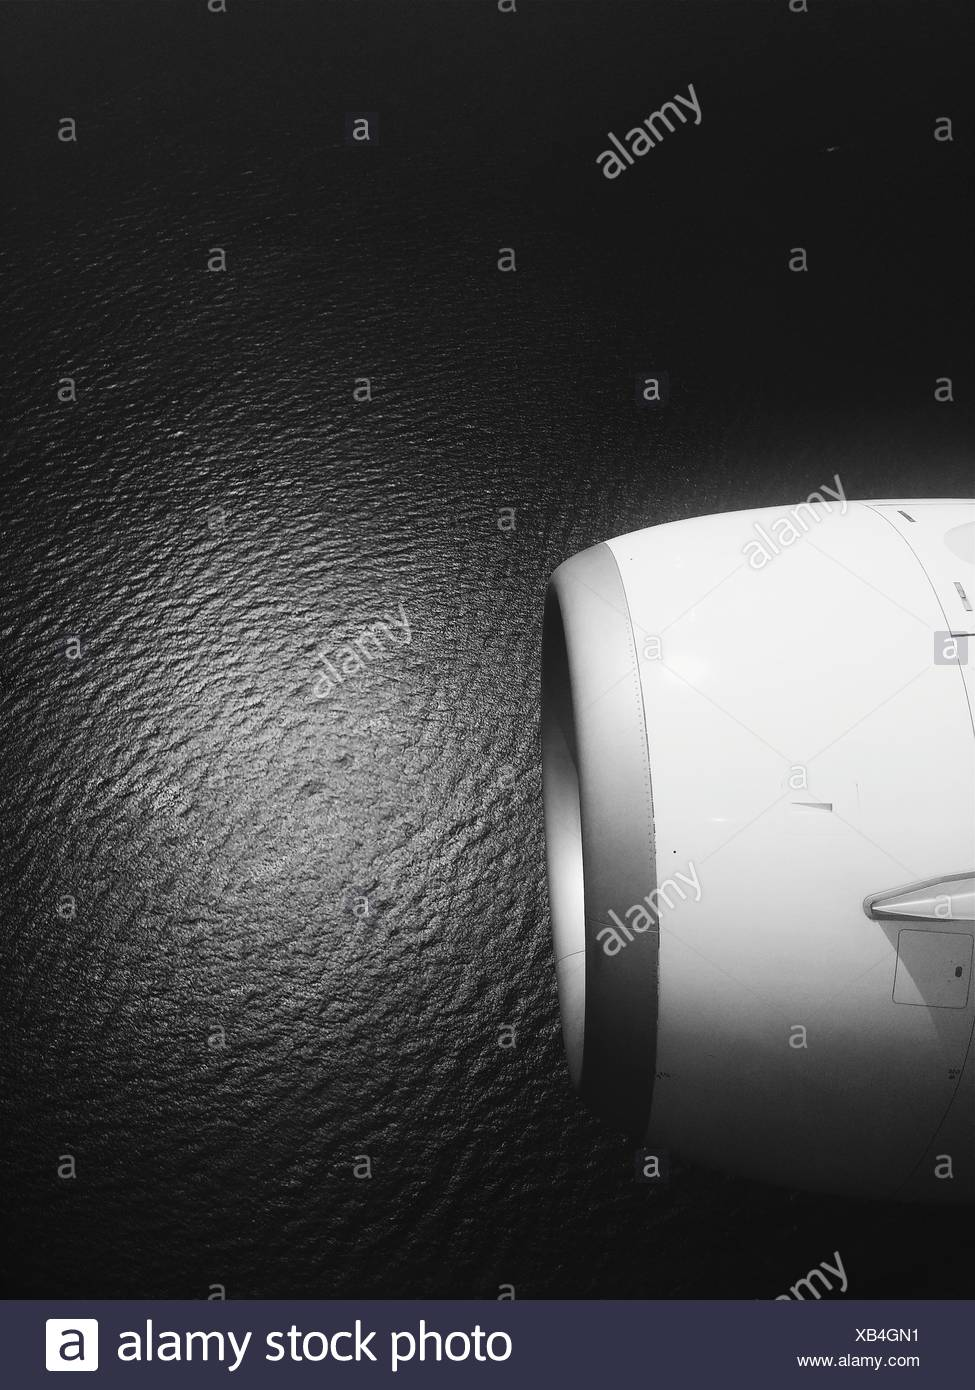 Cropped Image Of Jet Engine Over Sea - Stock Image